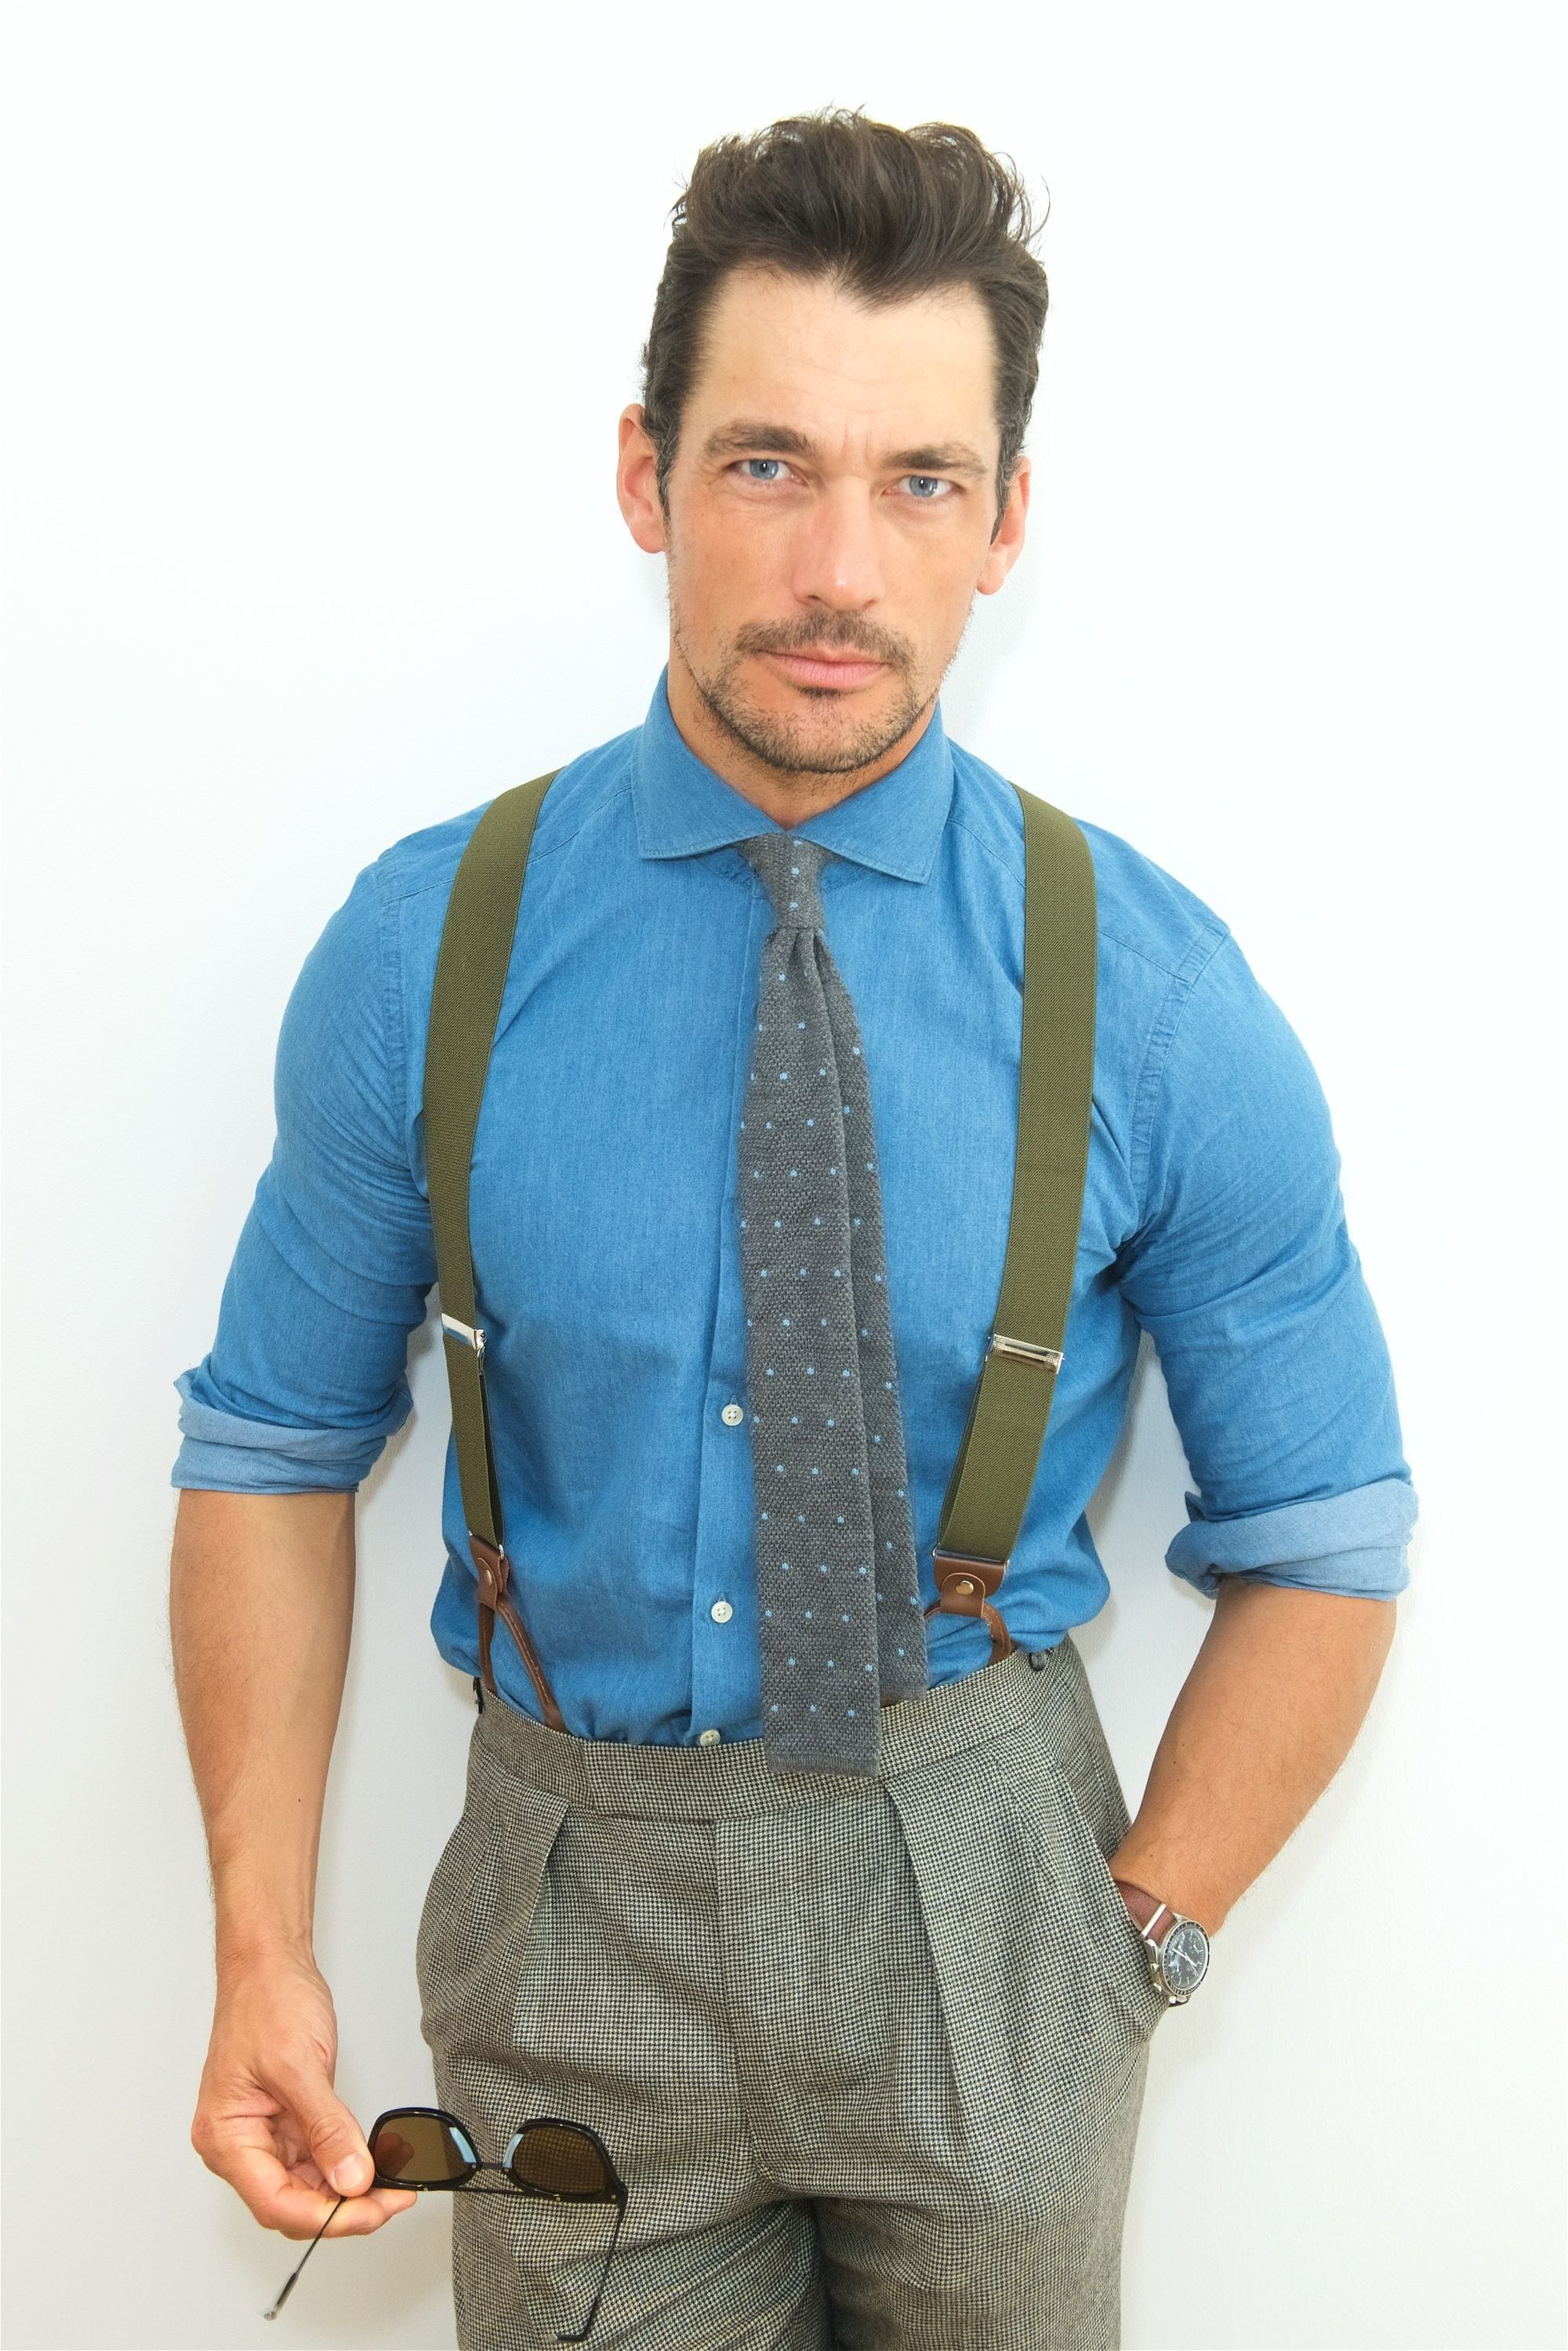 David Gandy brown hair in tousled messy quiff style